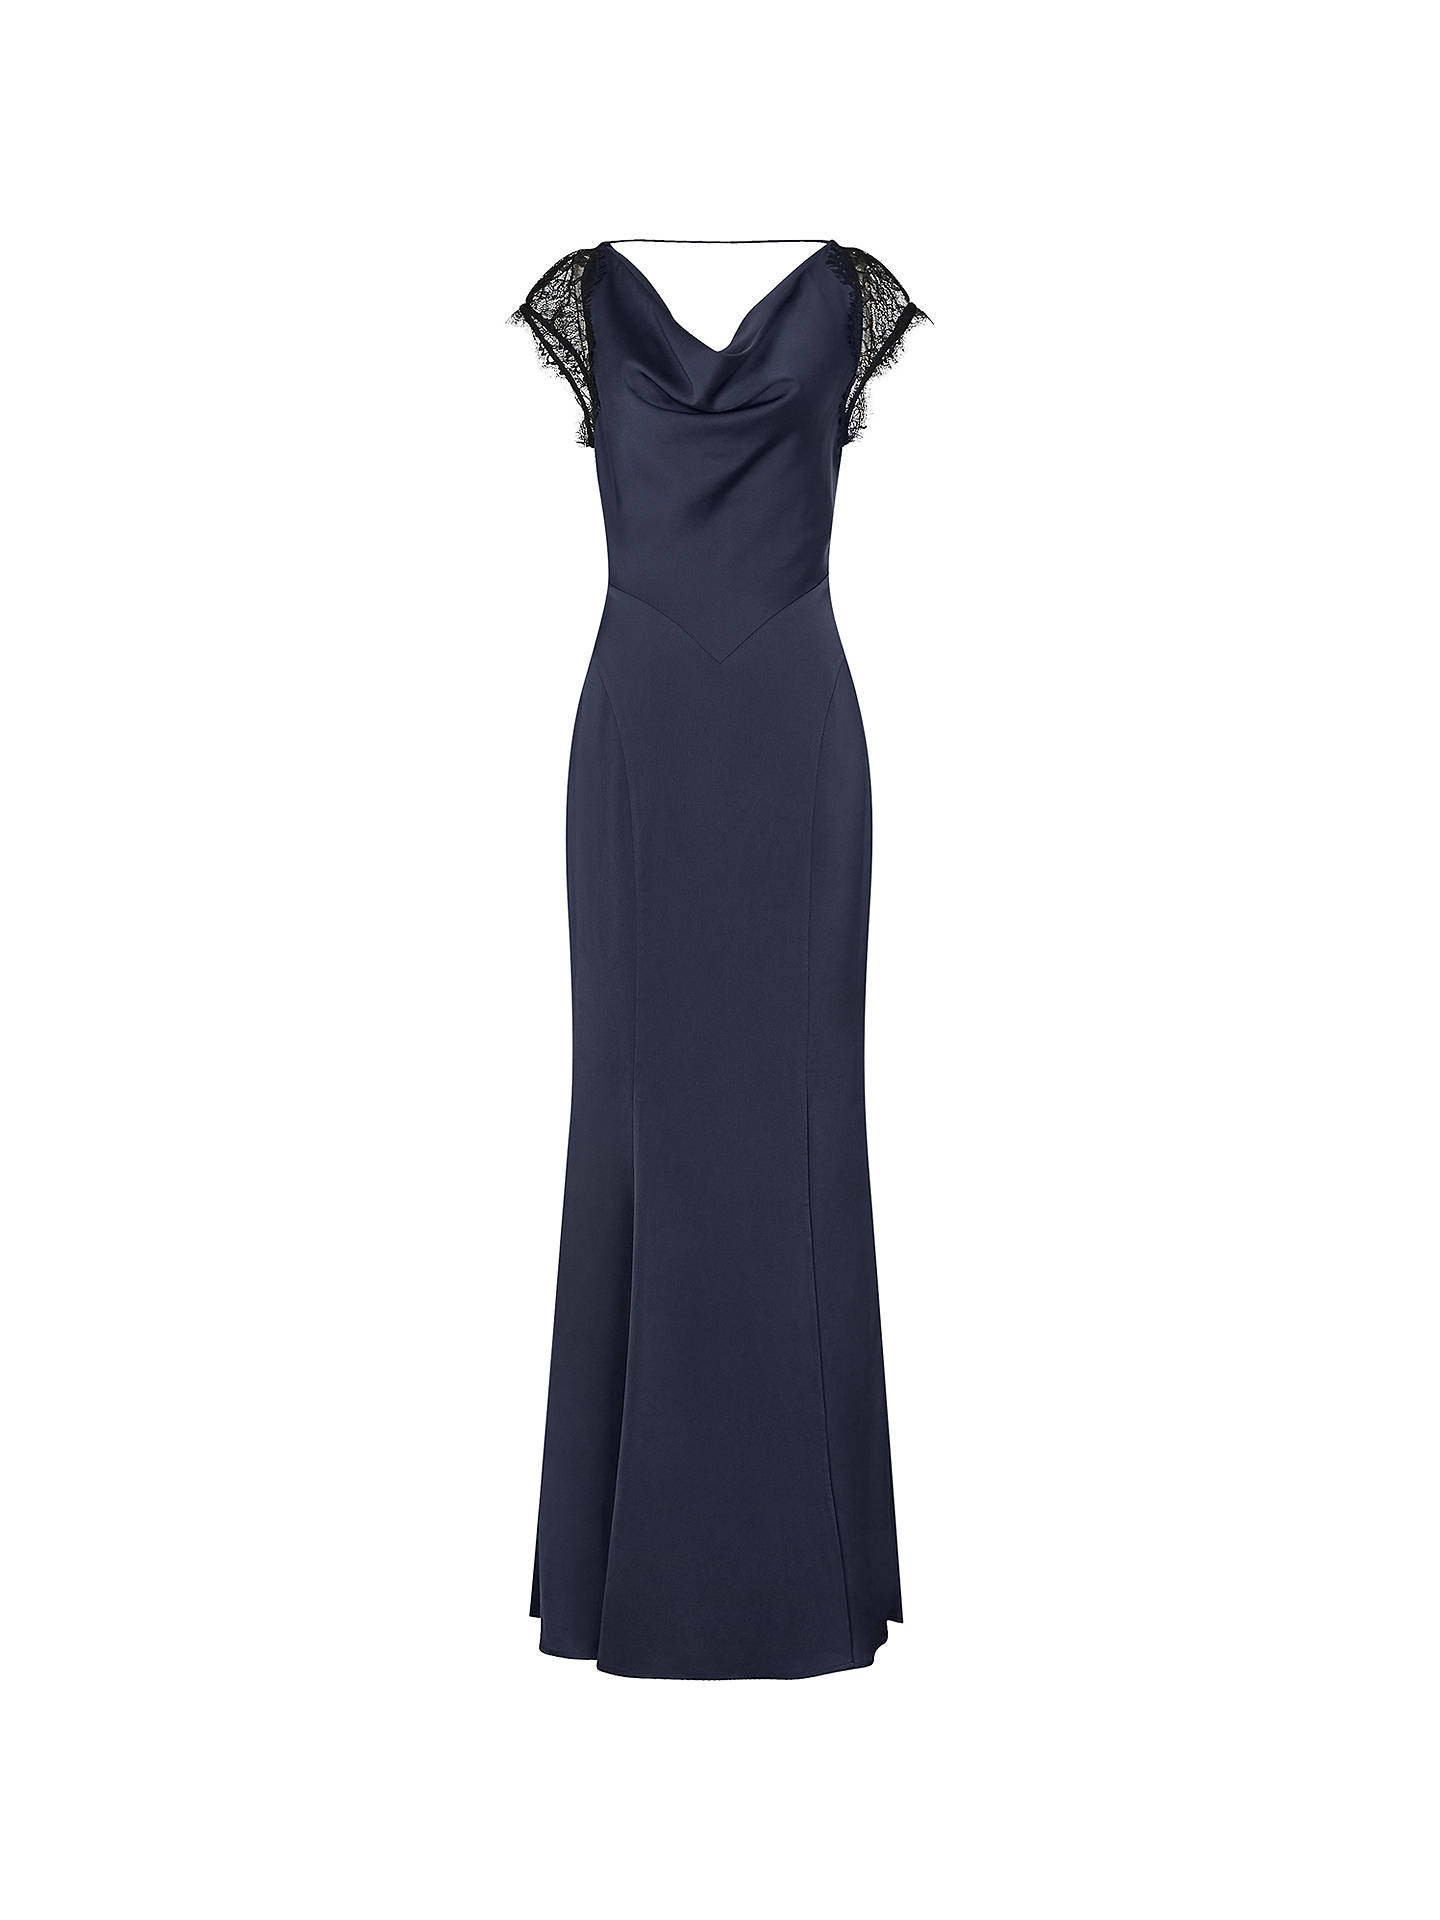 d7400c86c402 Buy Reiss Lace Back Maxi Dress, Night Navy, 6 Online at johnlewis.com